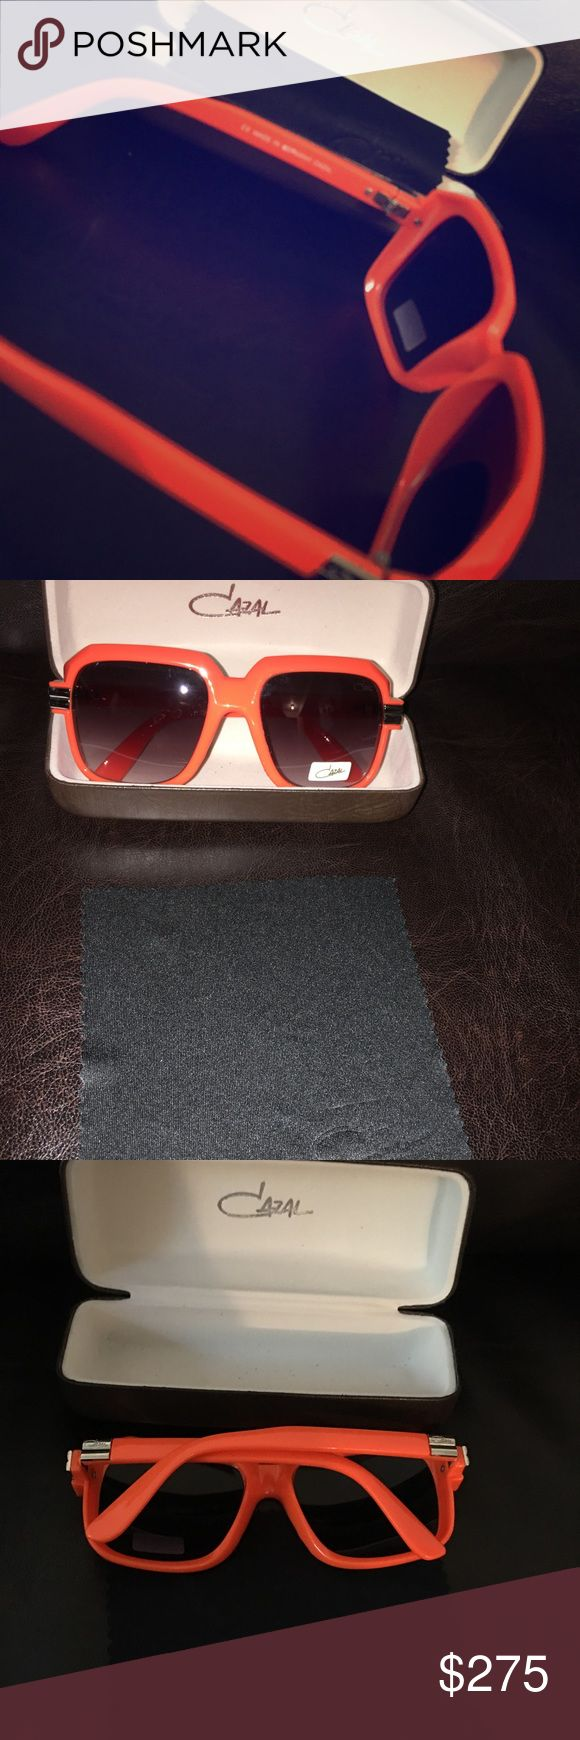 Cazal Sunglasses New! Case & cleaner included! 😍 Cazal Accessories Glasses